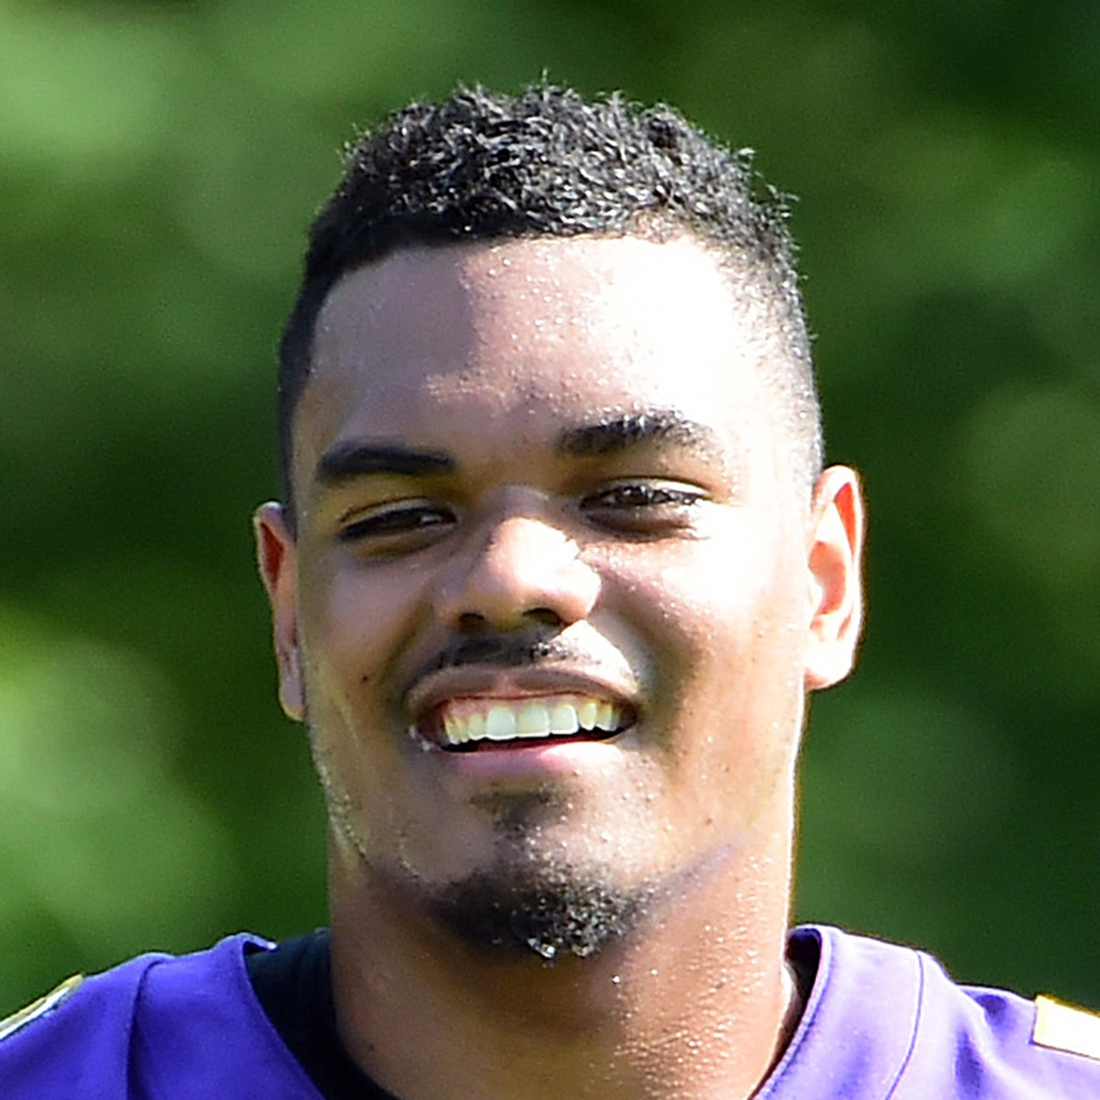 Jul 25, 2019; Baltimore, MD, USA; Baltimore Ravens offensive tackle Ronnie Stanley (79) during training camp at Under Armour Performance Center. Mandatory Credit: Evan Habeeb-USA TODAY Sports